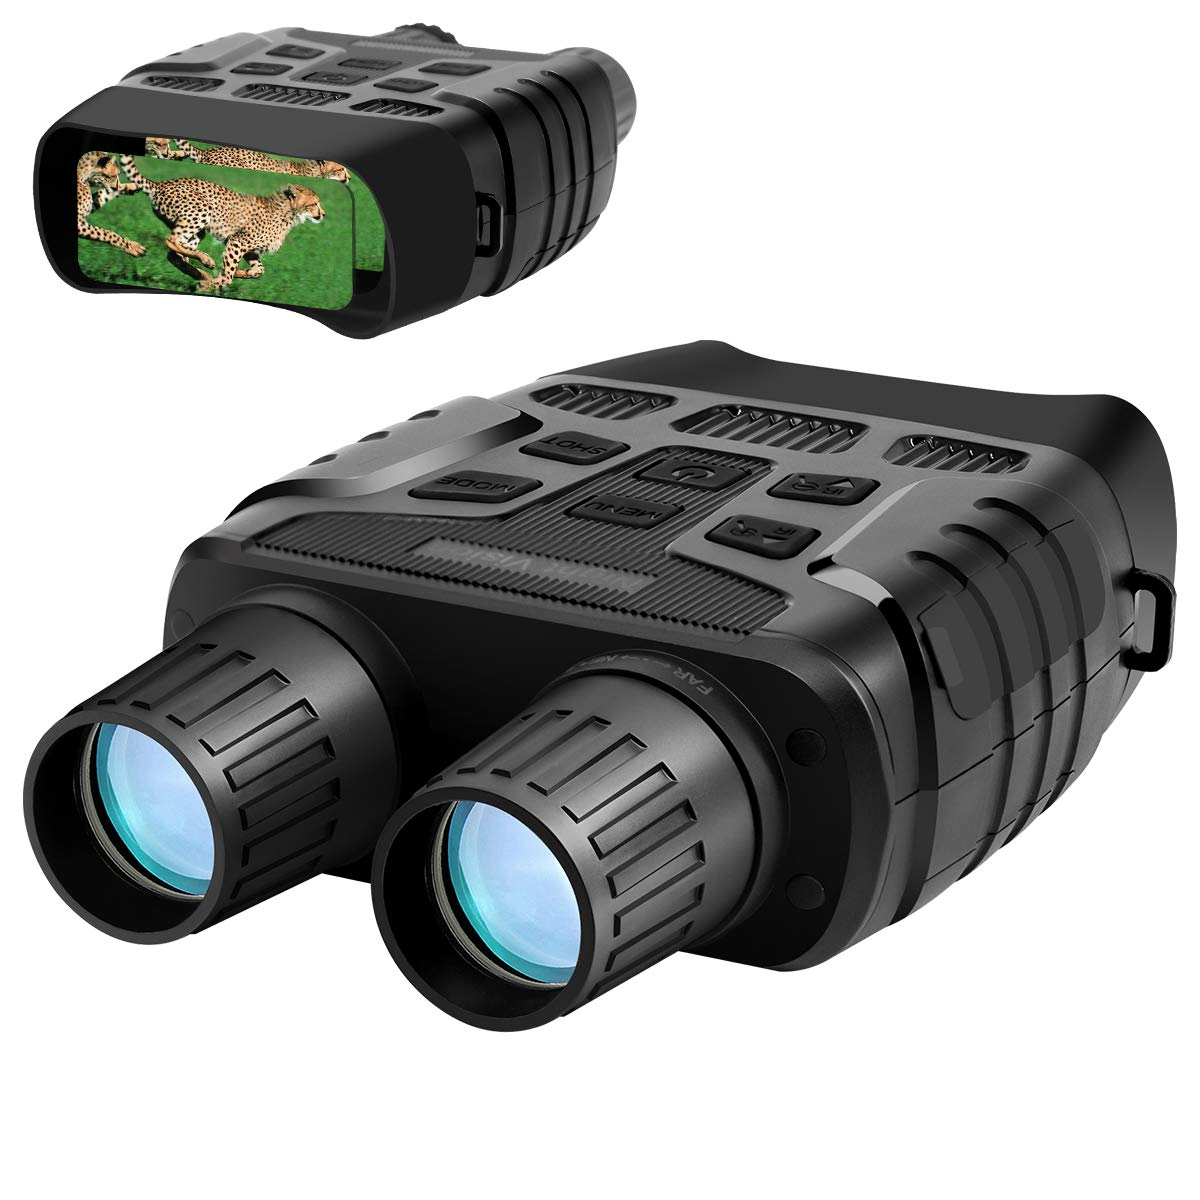 Aurho Night Vision Binoculars, 720P HD Digital Infrared Hunting Binocular 300 Yards IR Camera with Video Recorder with 2.31'' TFT LCD Photos Videos Playback for Wildlife by Aurho